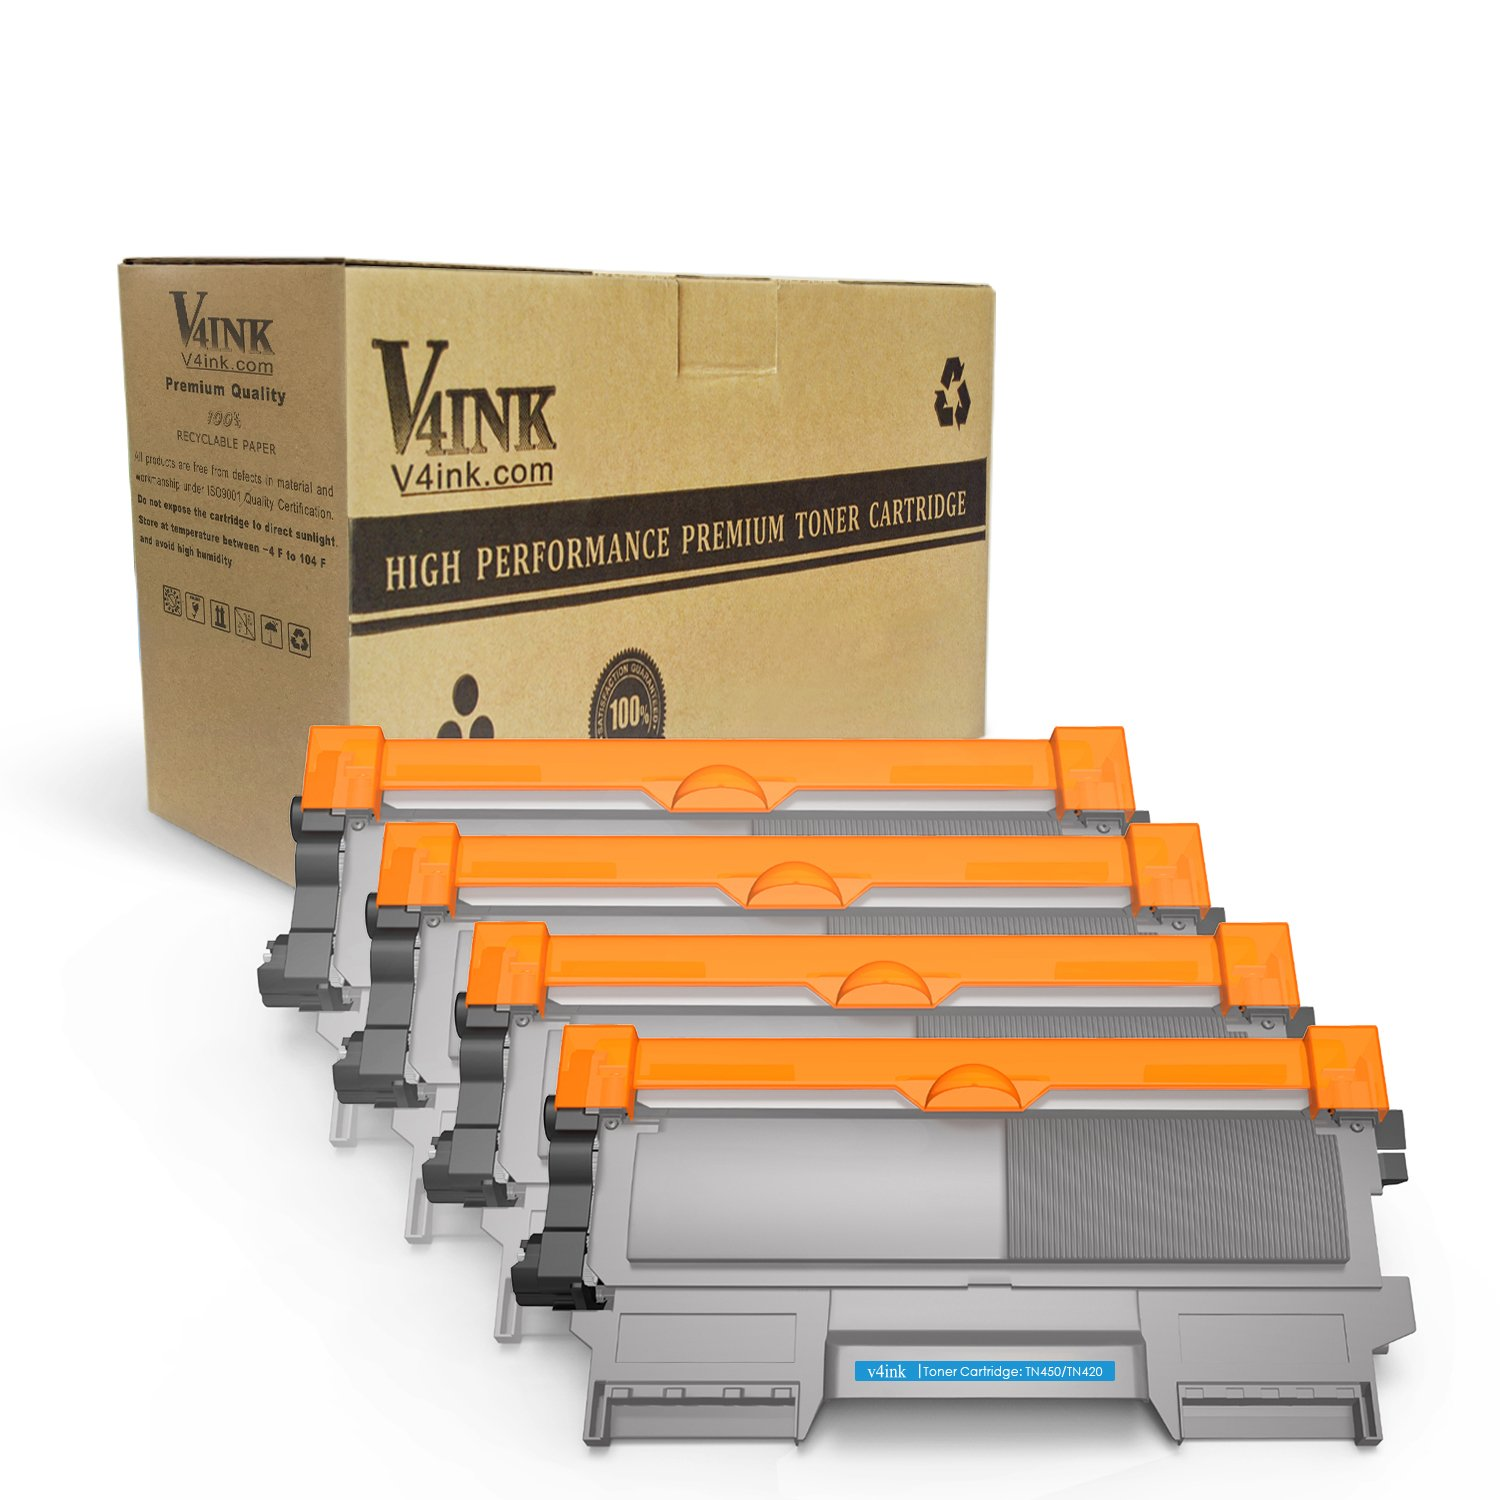 V4INK 4 Pack New Replacement for Brother TN450 TN-450 TN-420 Toner Cartridge for Use with Brother HL-2270dw HL-2280dw HL-2240d MFC-7360n MFC-7860dw Series Printer